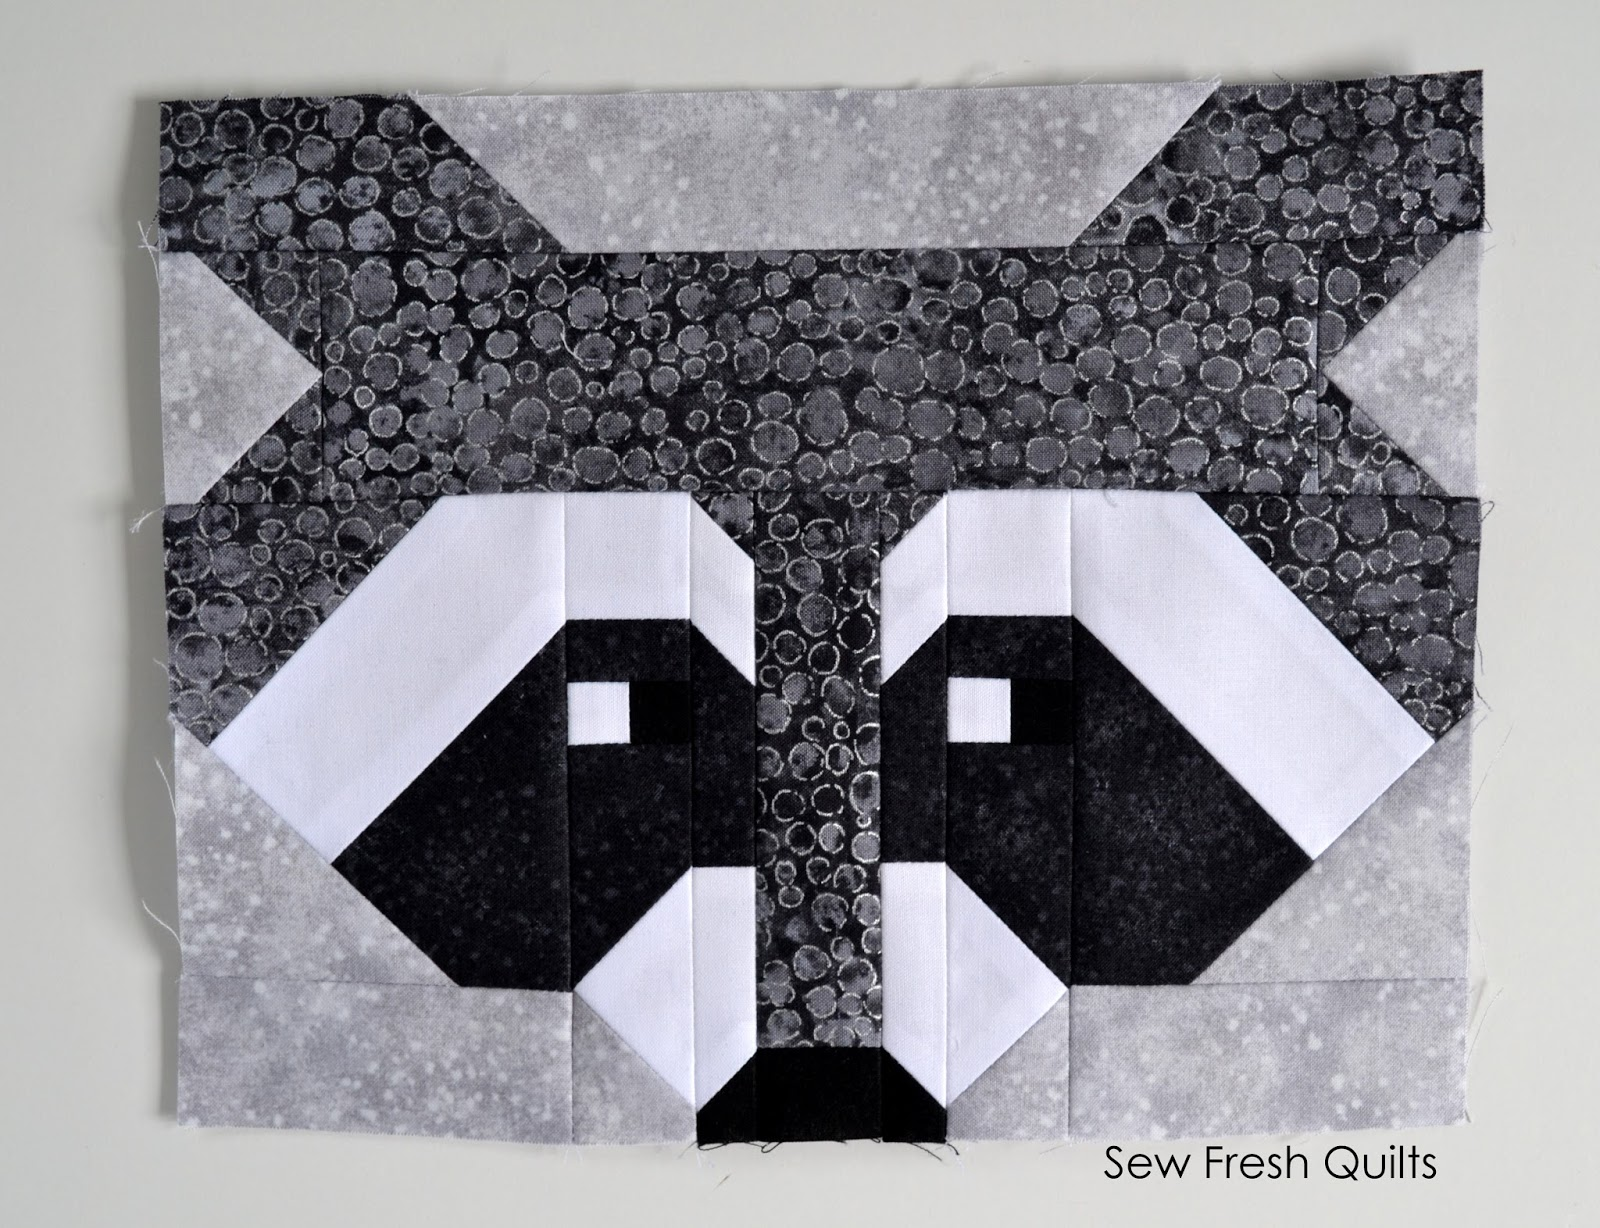 Sew fresh quilts raccoon quilt jeuxipadfo Gallery